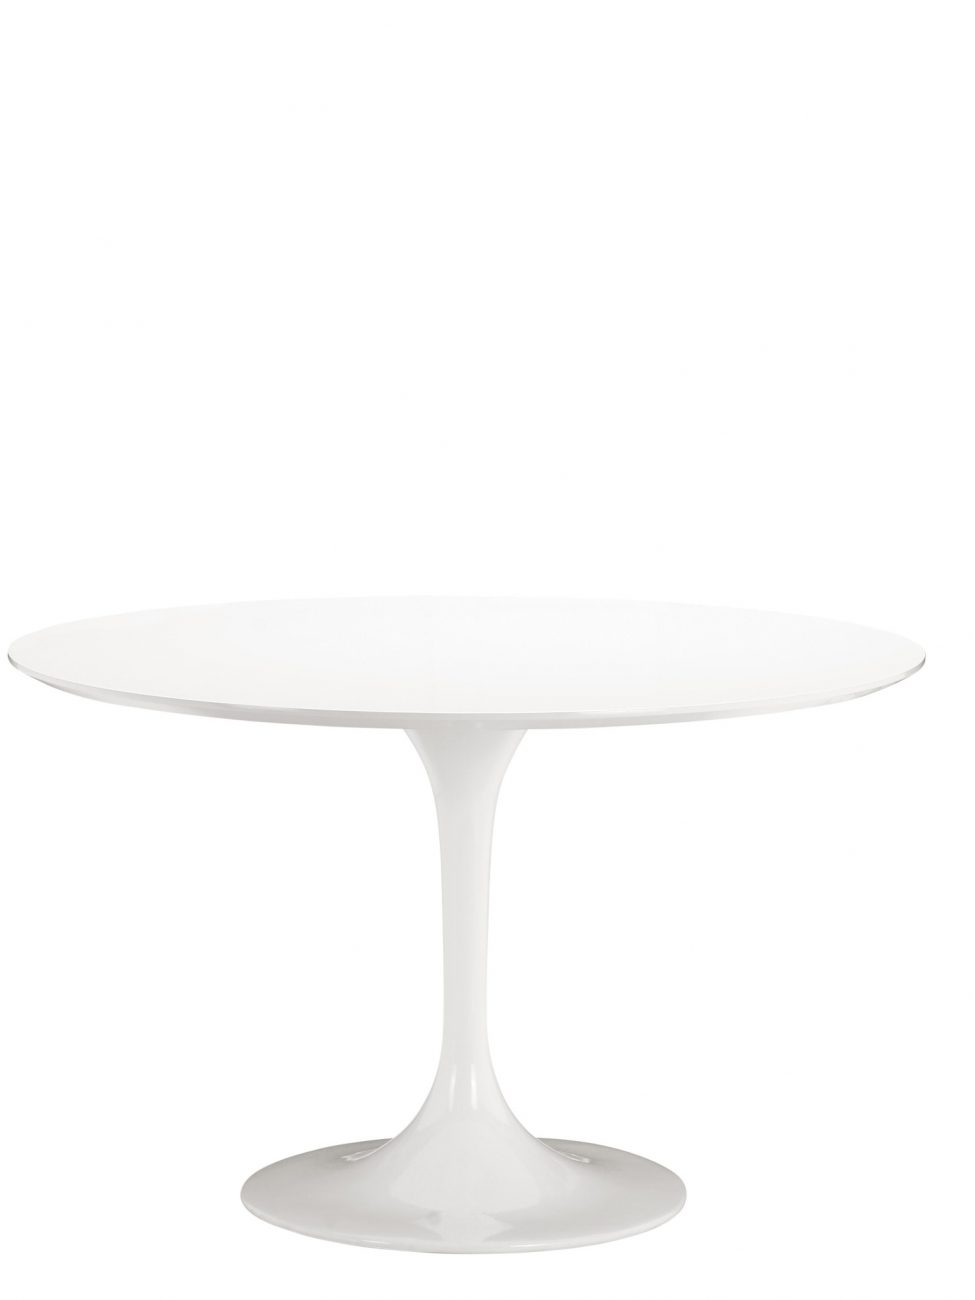 MDF ROUND TABLE (1)